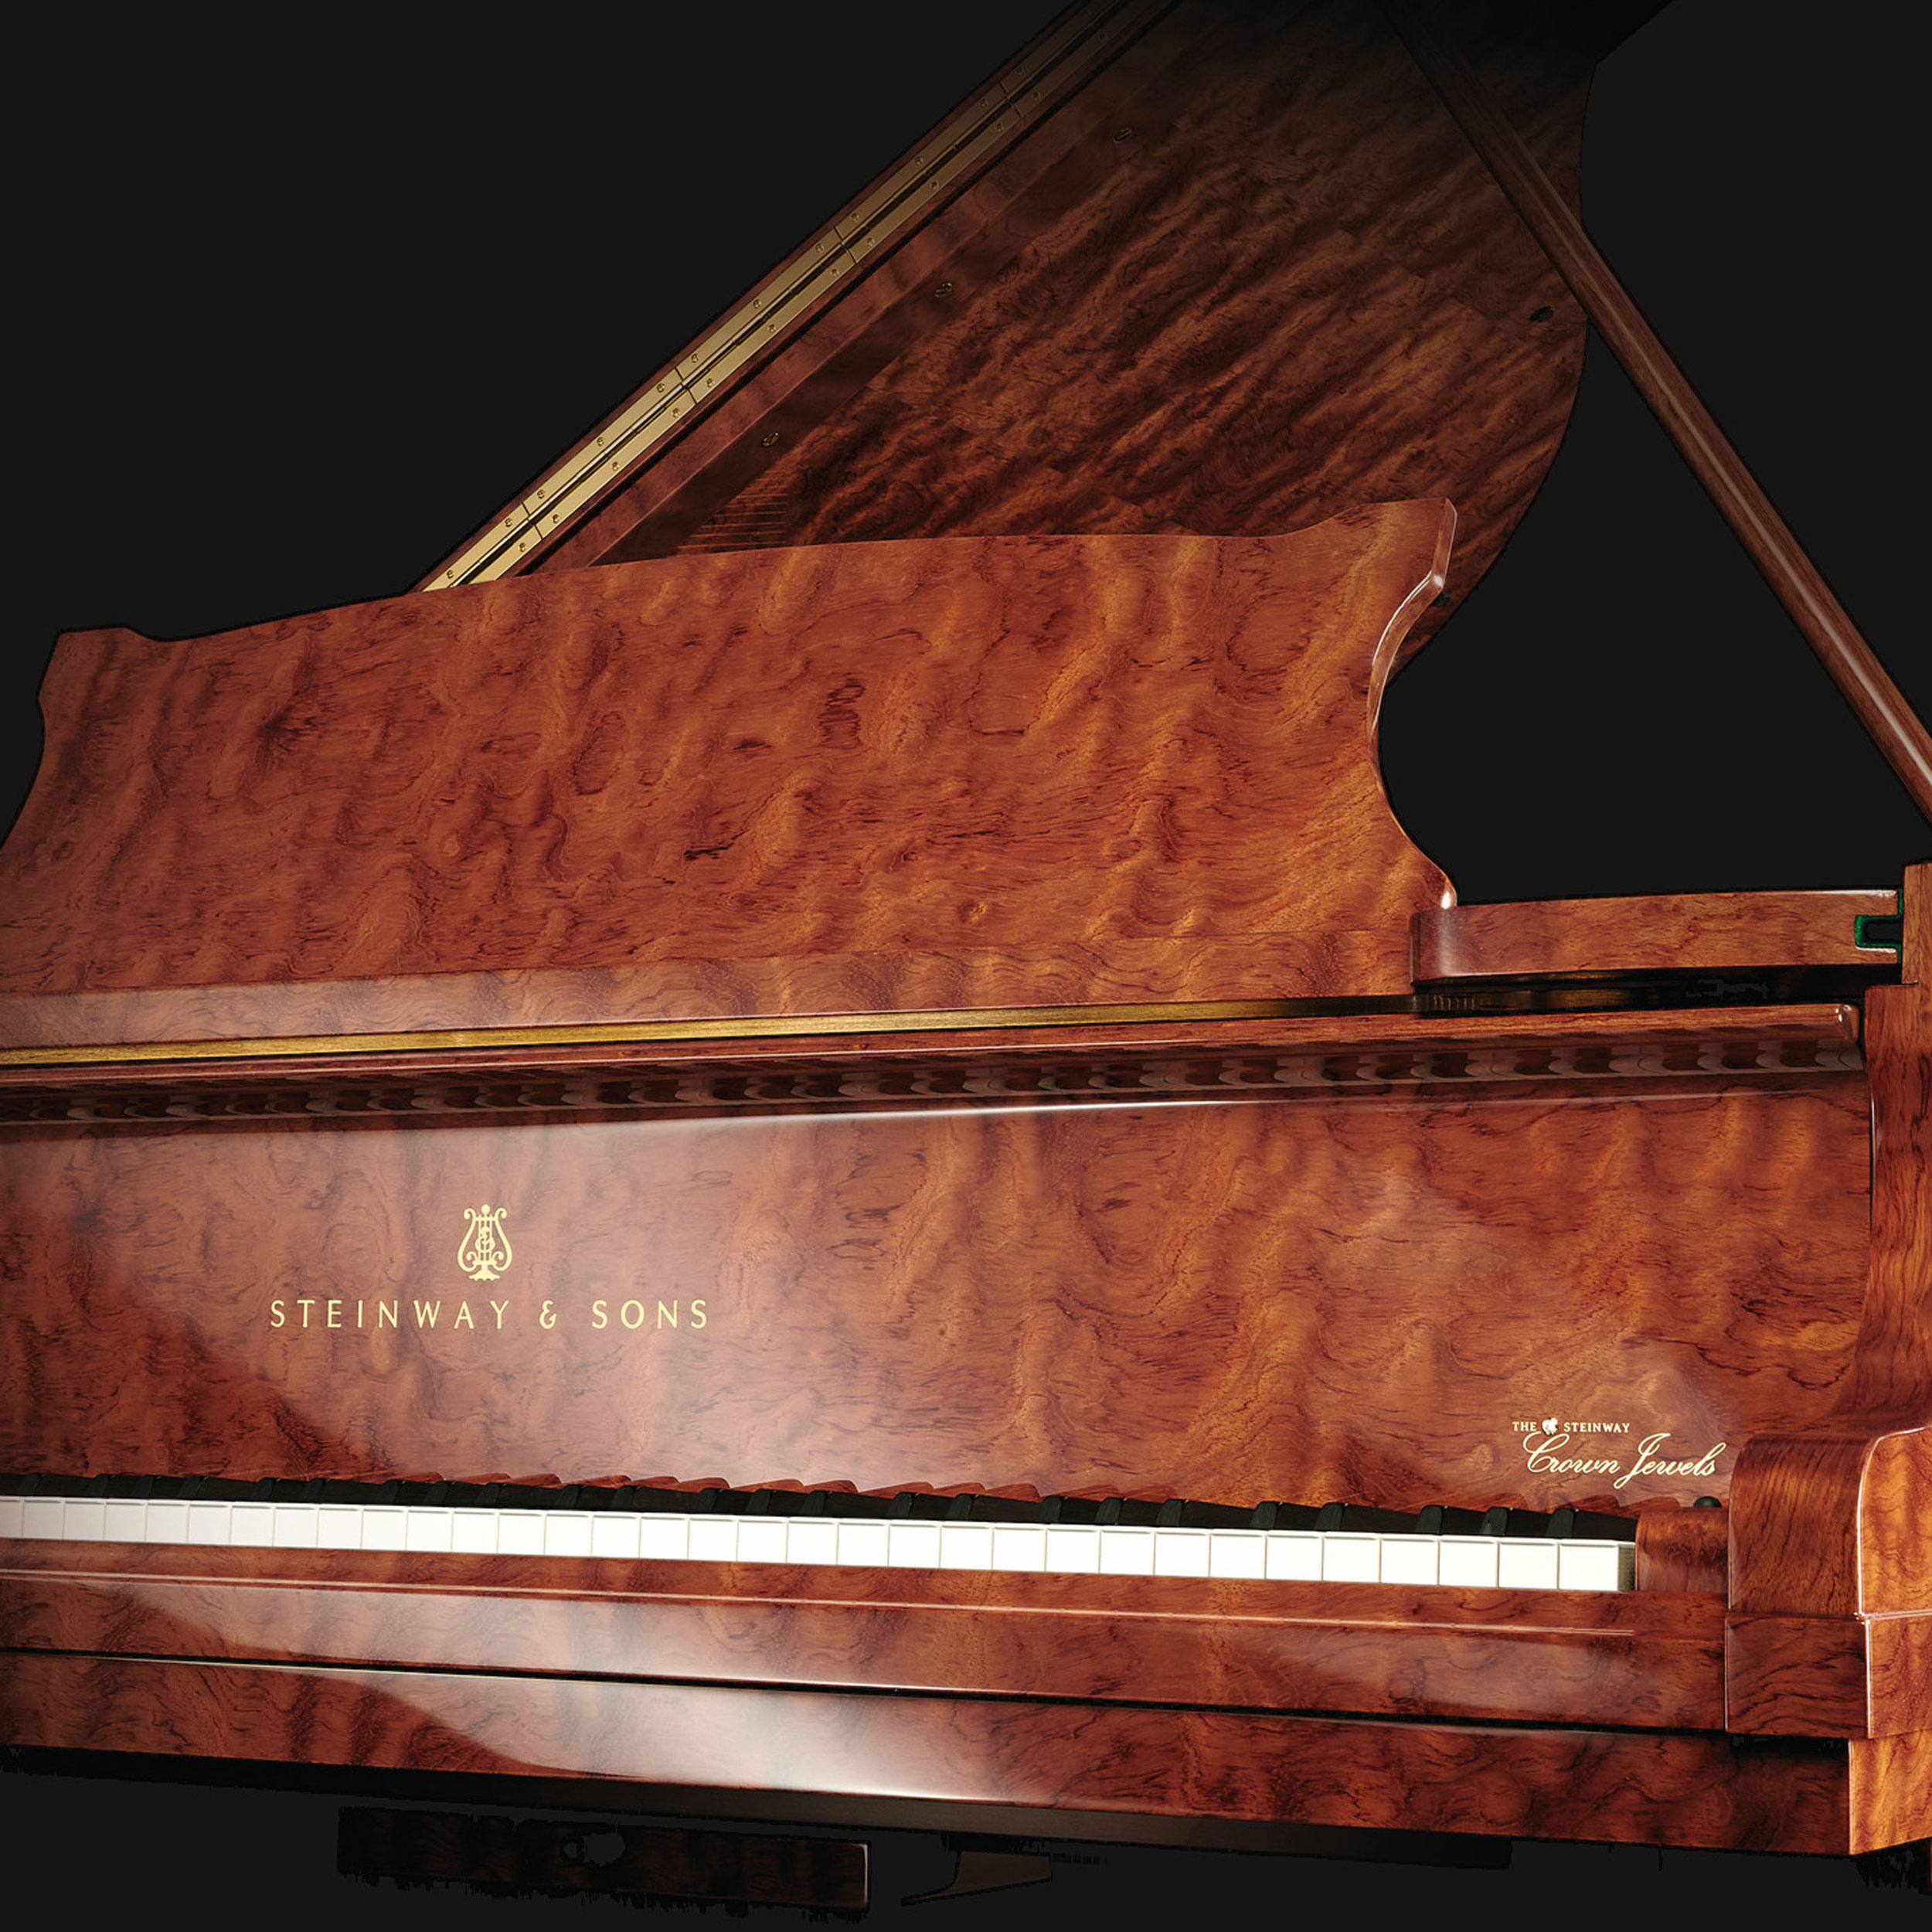 Steinway Special Crown Jewels Collections